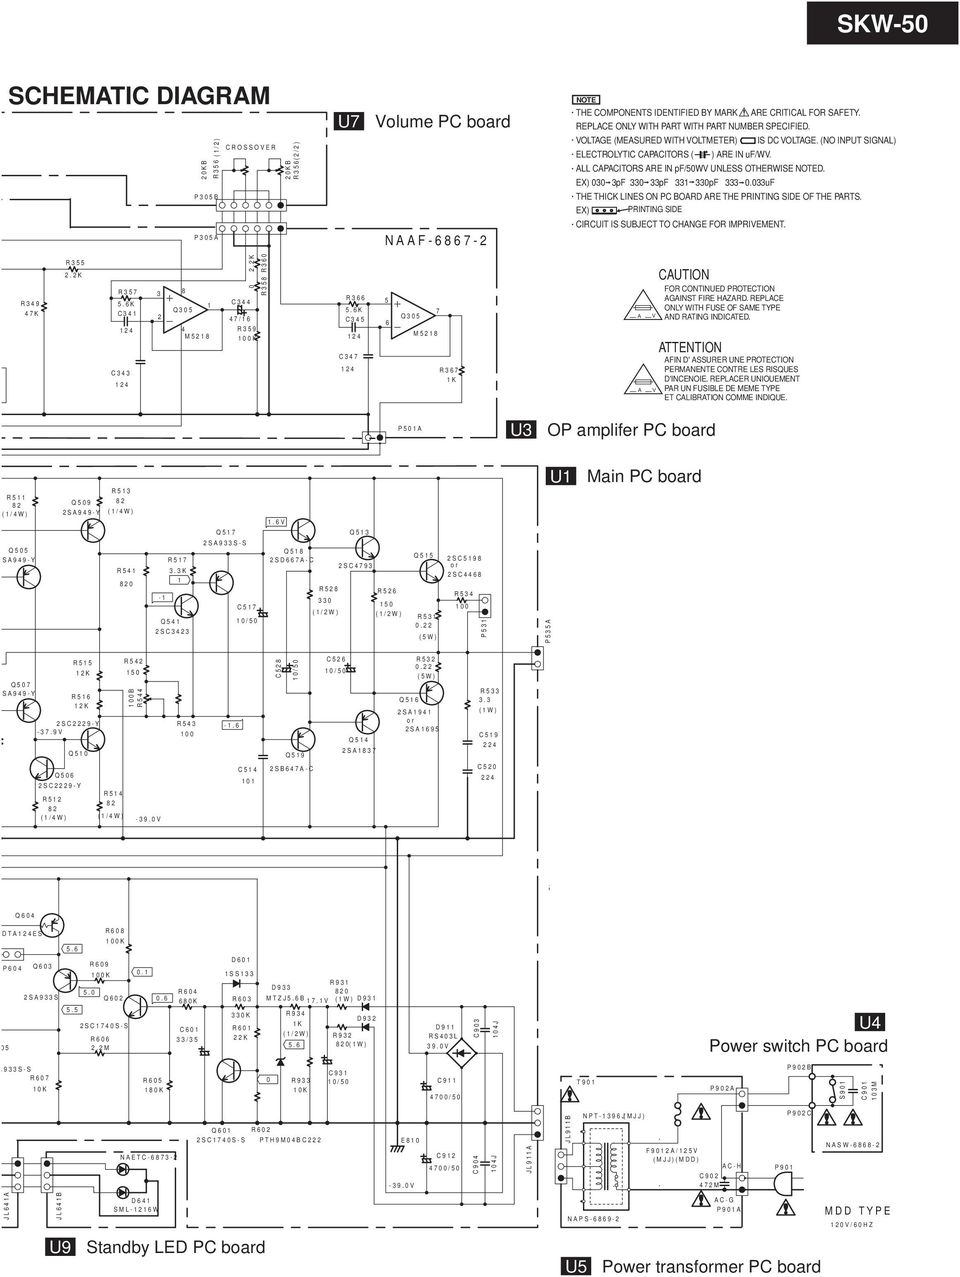 Service Manual Powered Subwoofer Pdf Addition Wiring Diagram On 8 Pin Crossover All Capacitors Are In Pf 50wv Unless Otherwise Noted Ex 030 3pf 330